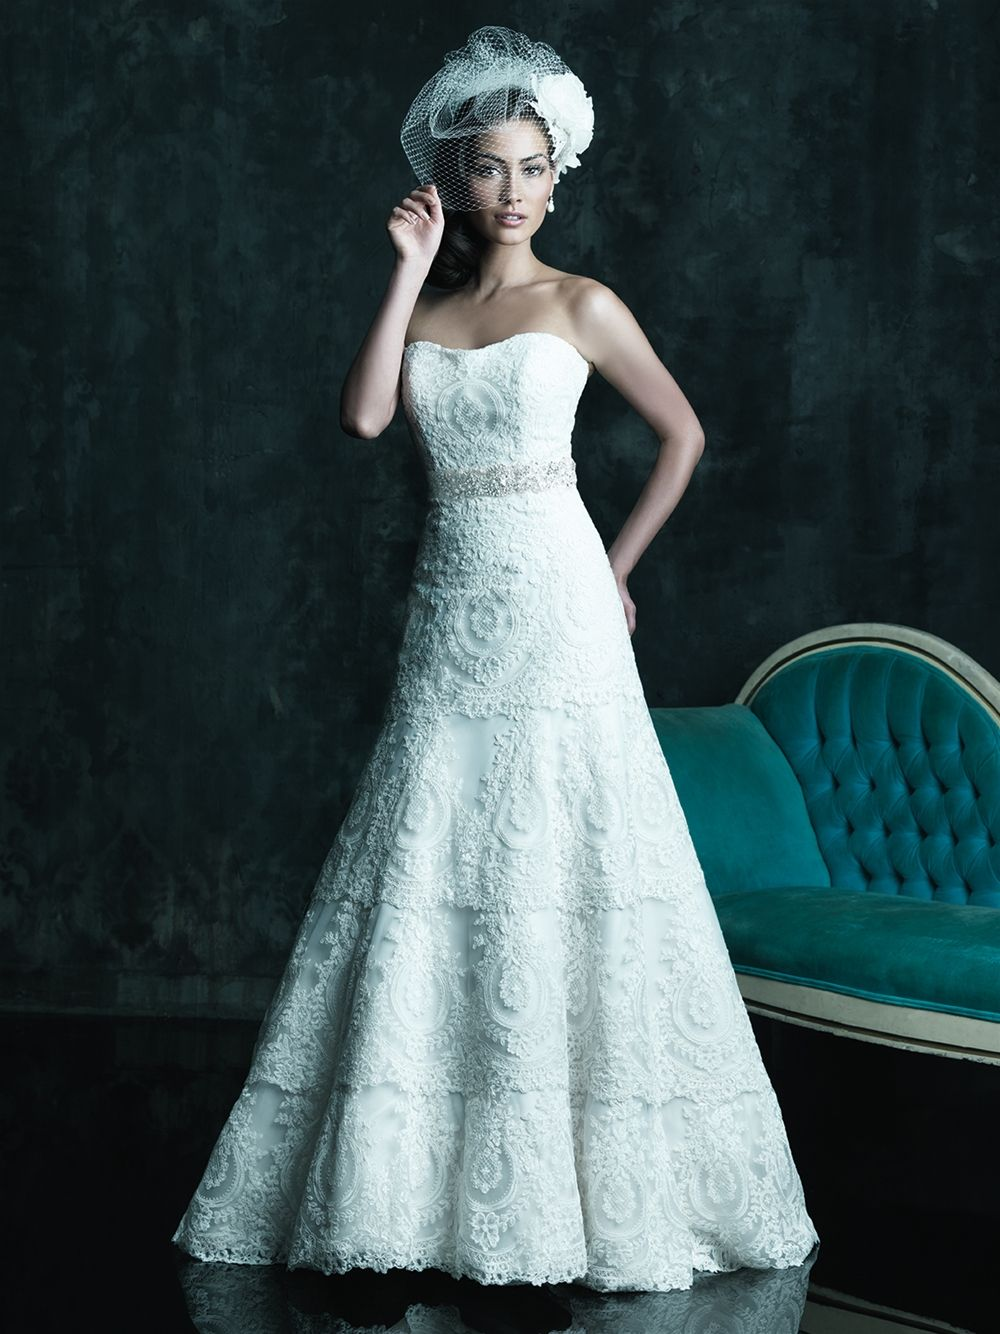 Tiered Lace & Organza A-Line Strapless Scoop Neckline Gown by Allure ...